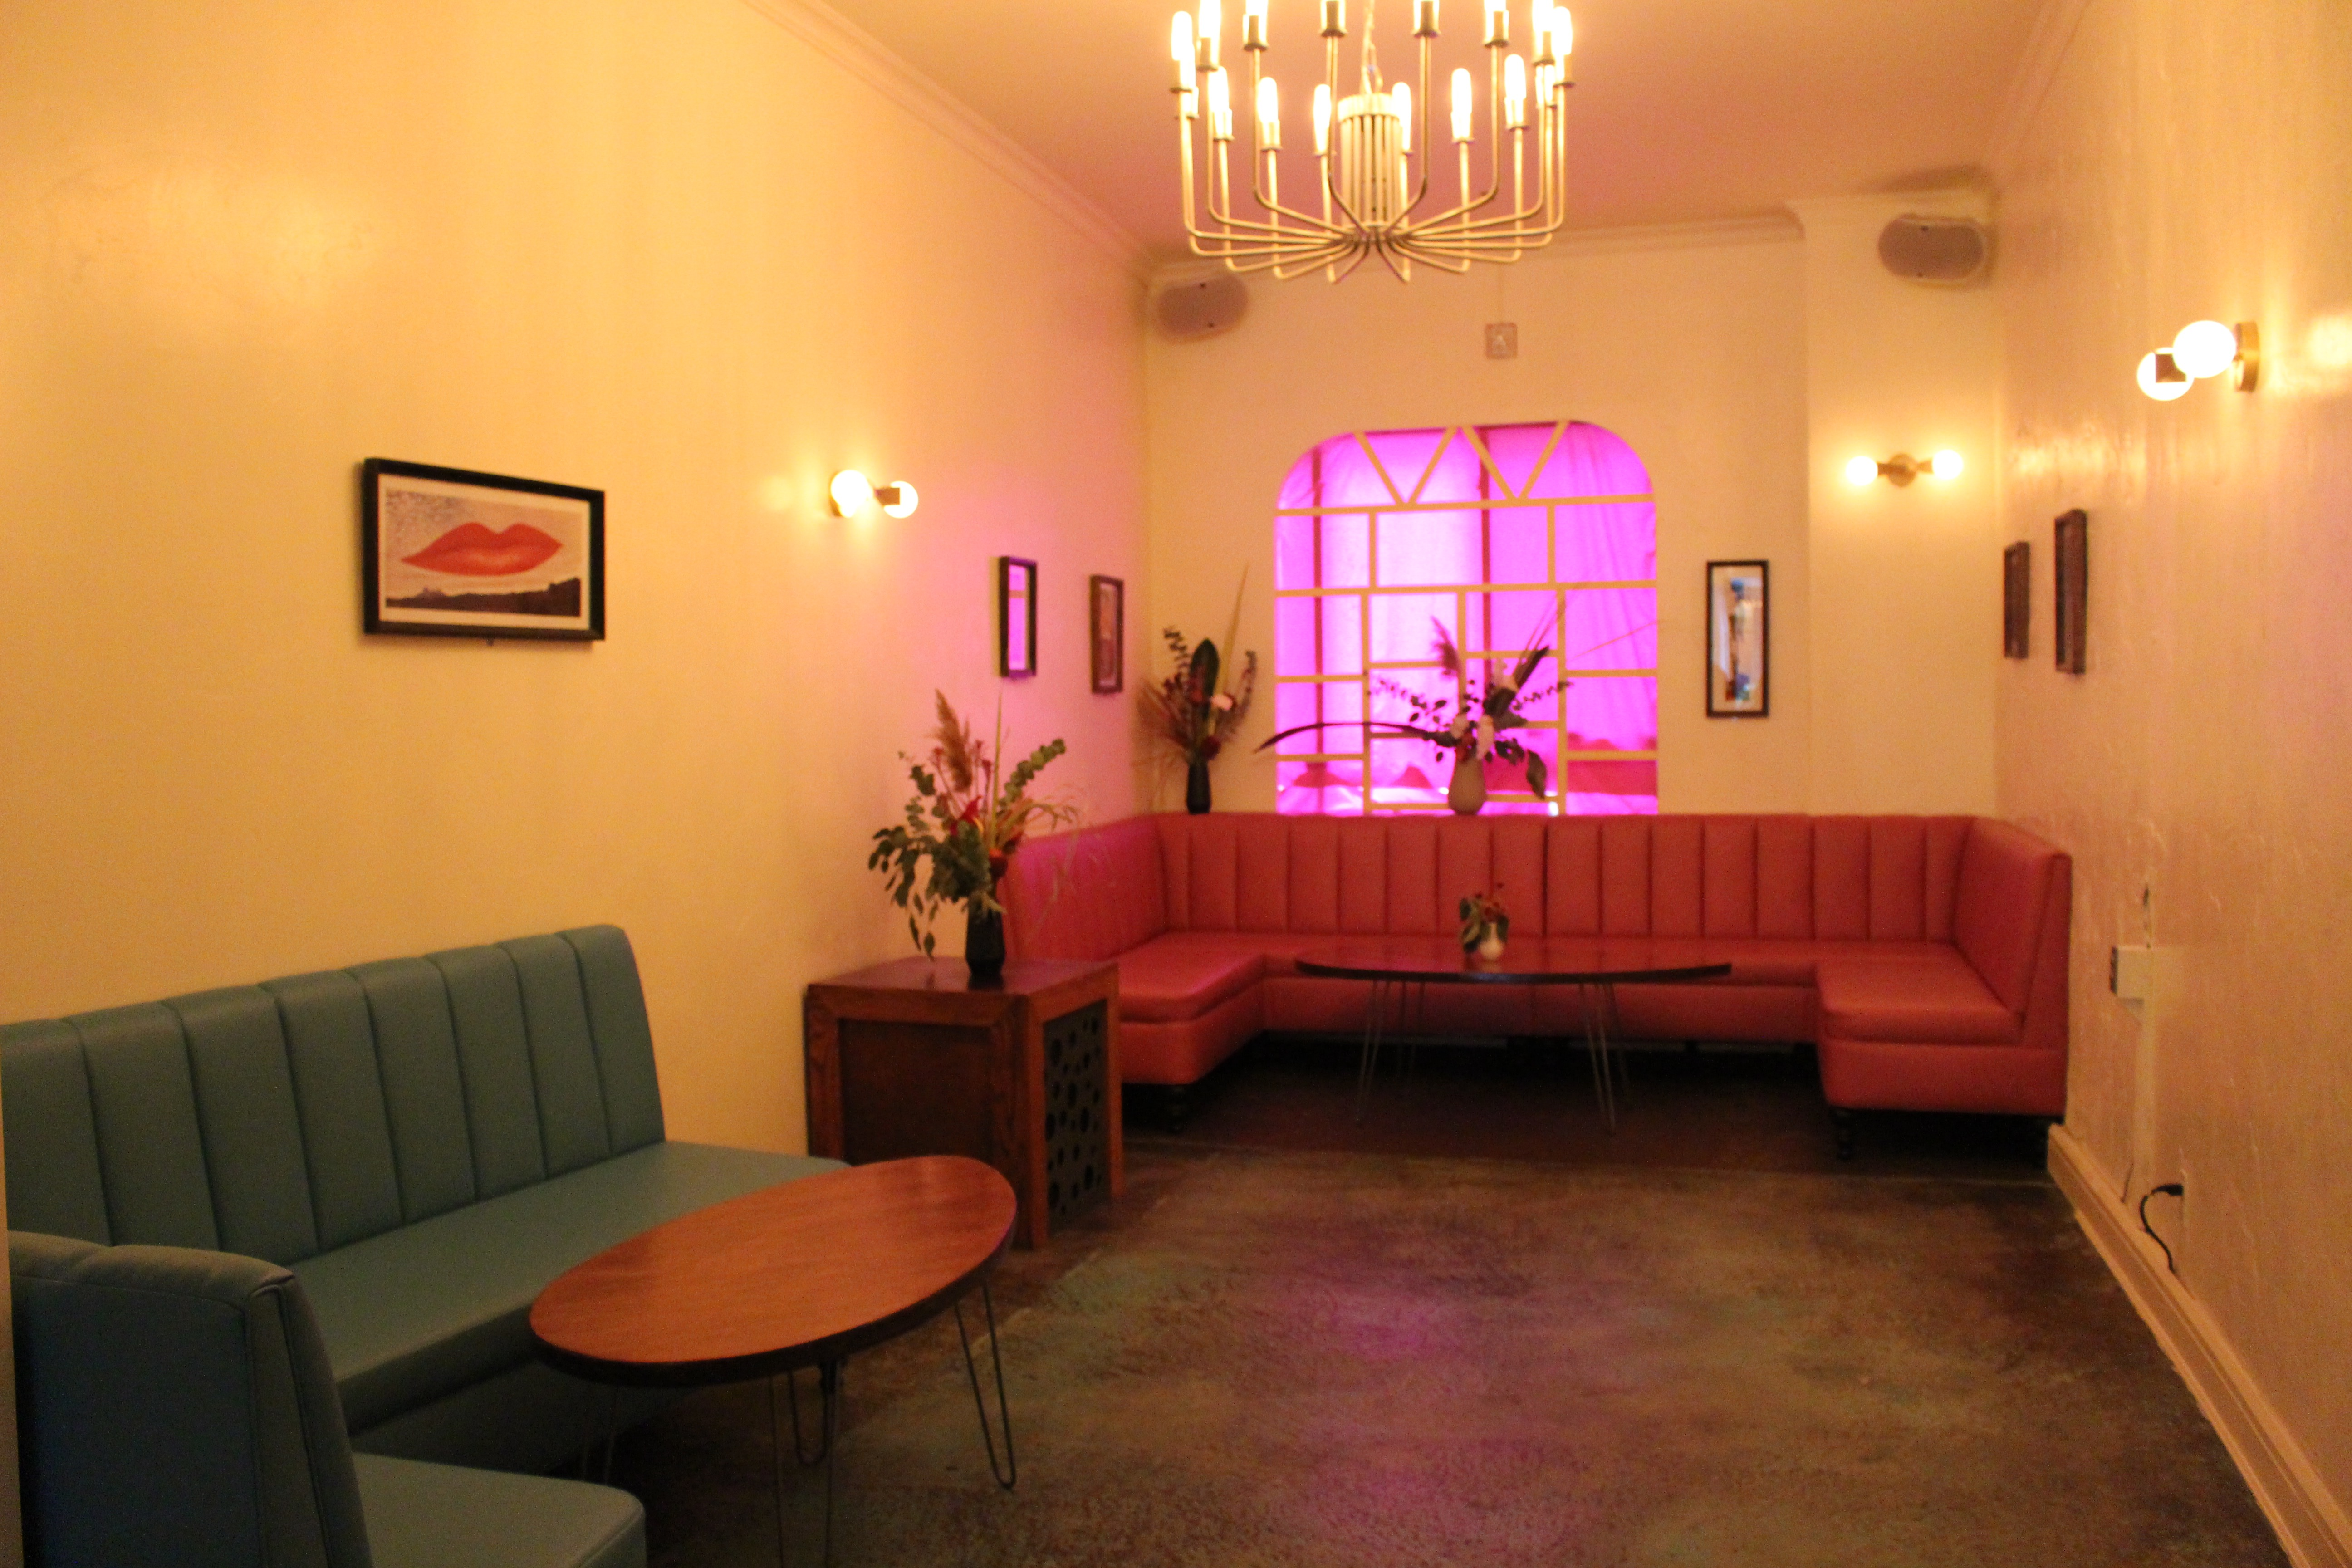 A Seating Area In The Newly Opened Kind Regards DNAinfo Allegra Hobbs